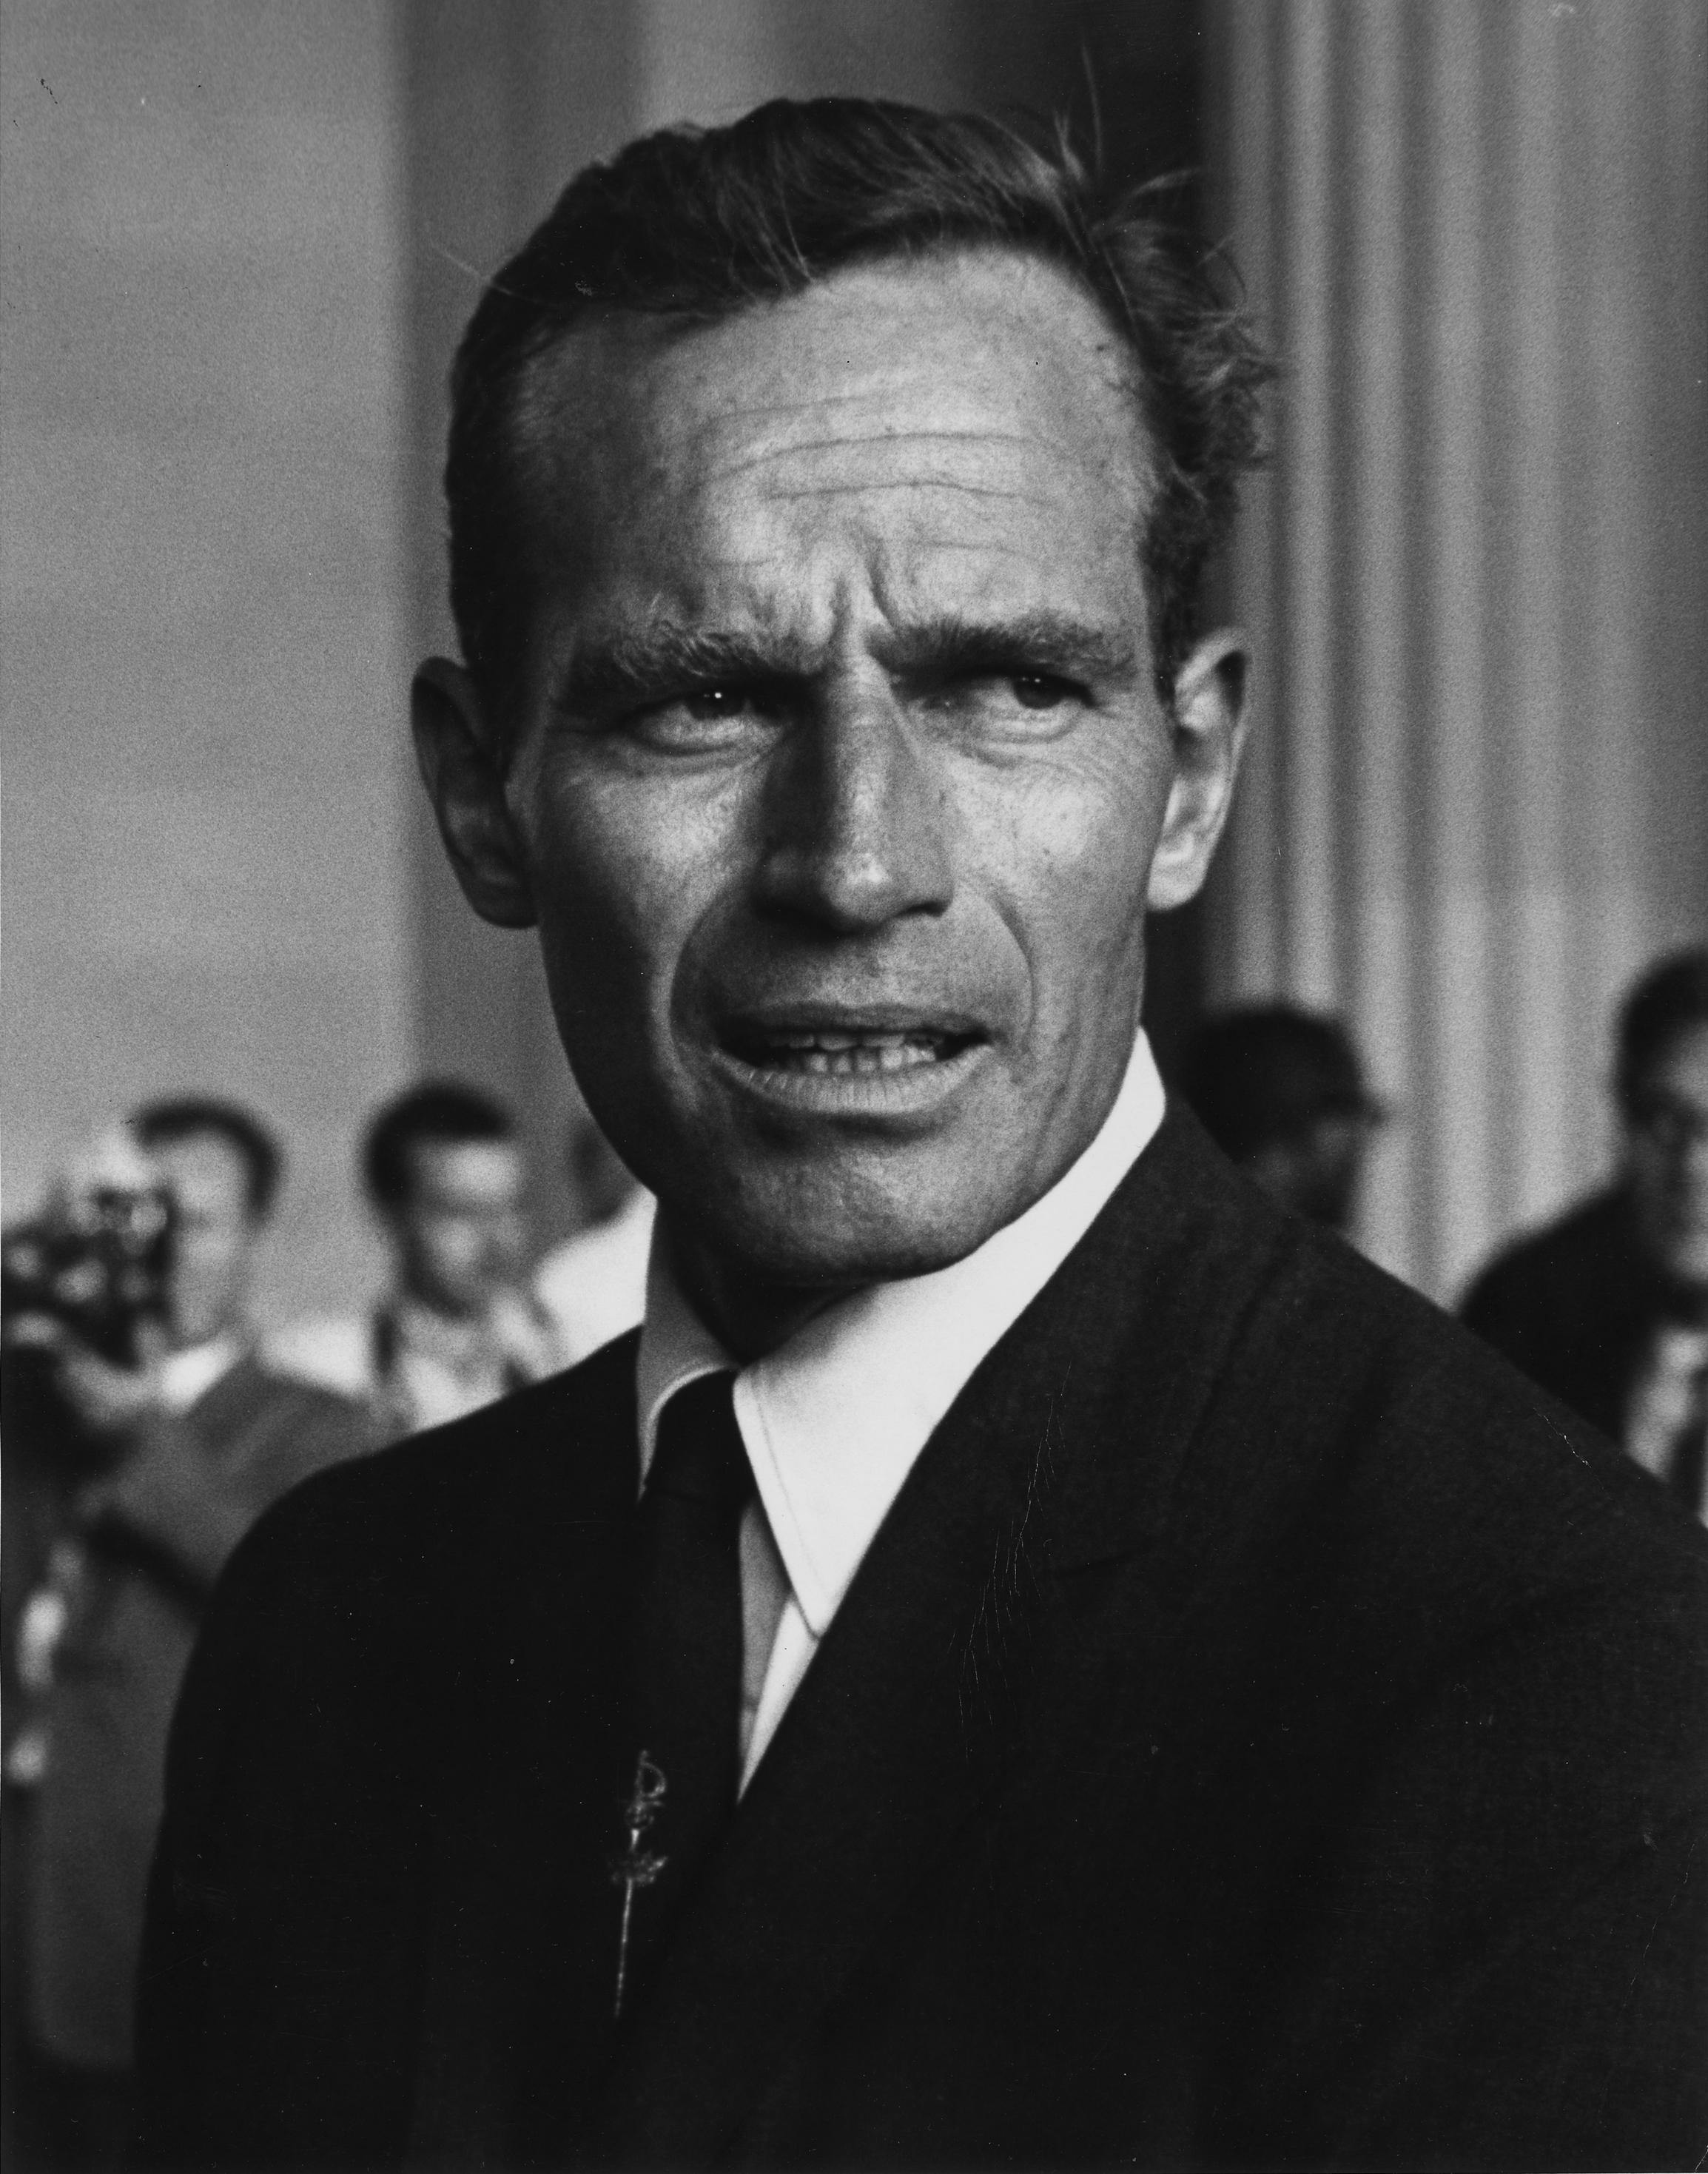 Charlton Heston in 1963